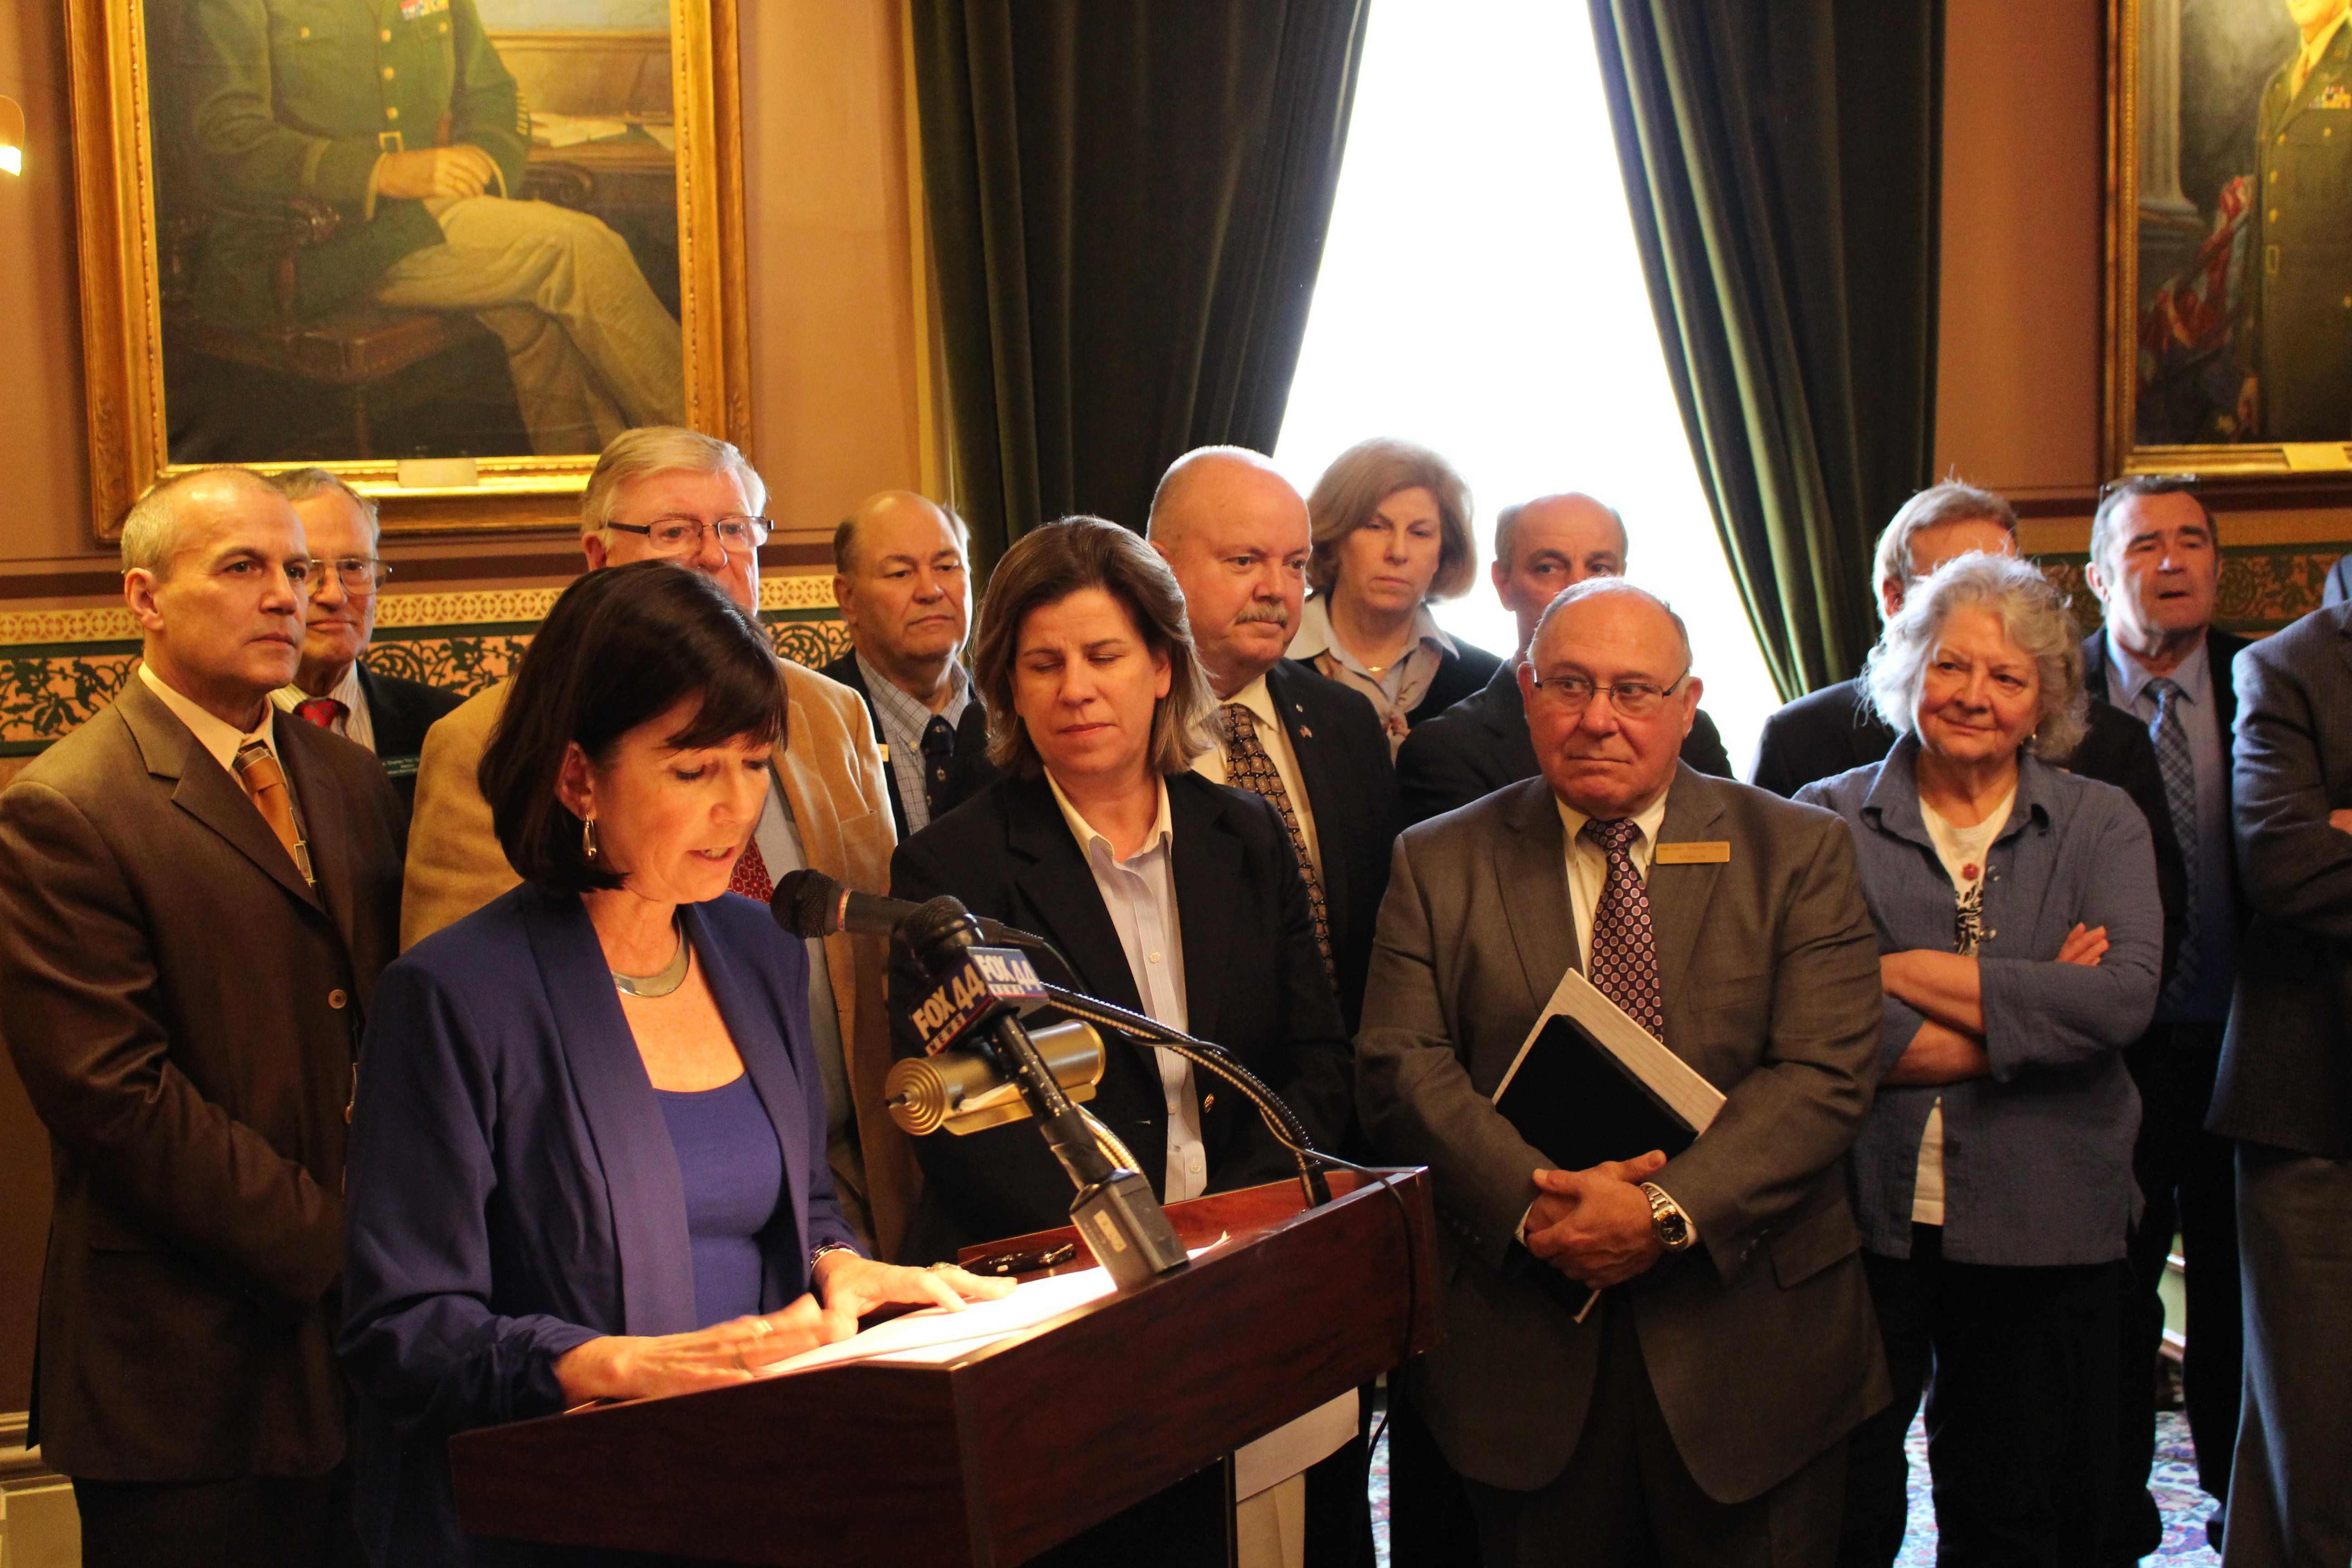 House Republicans at a Statehouse press conference in April - PAUL HEINTZ